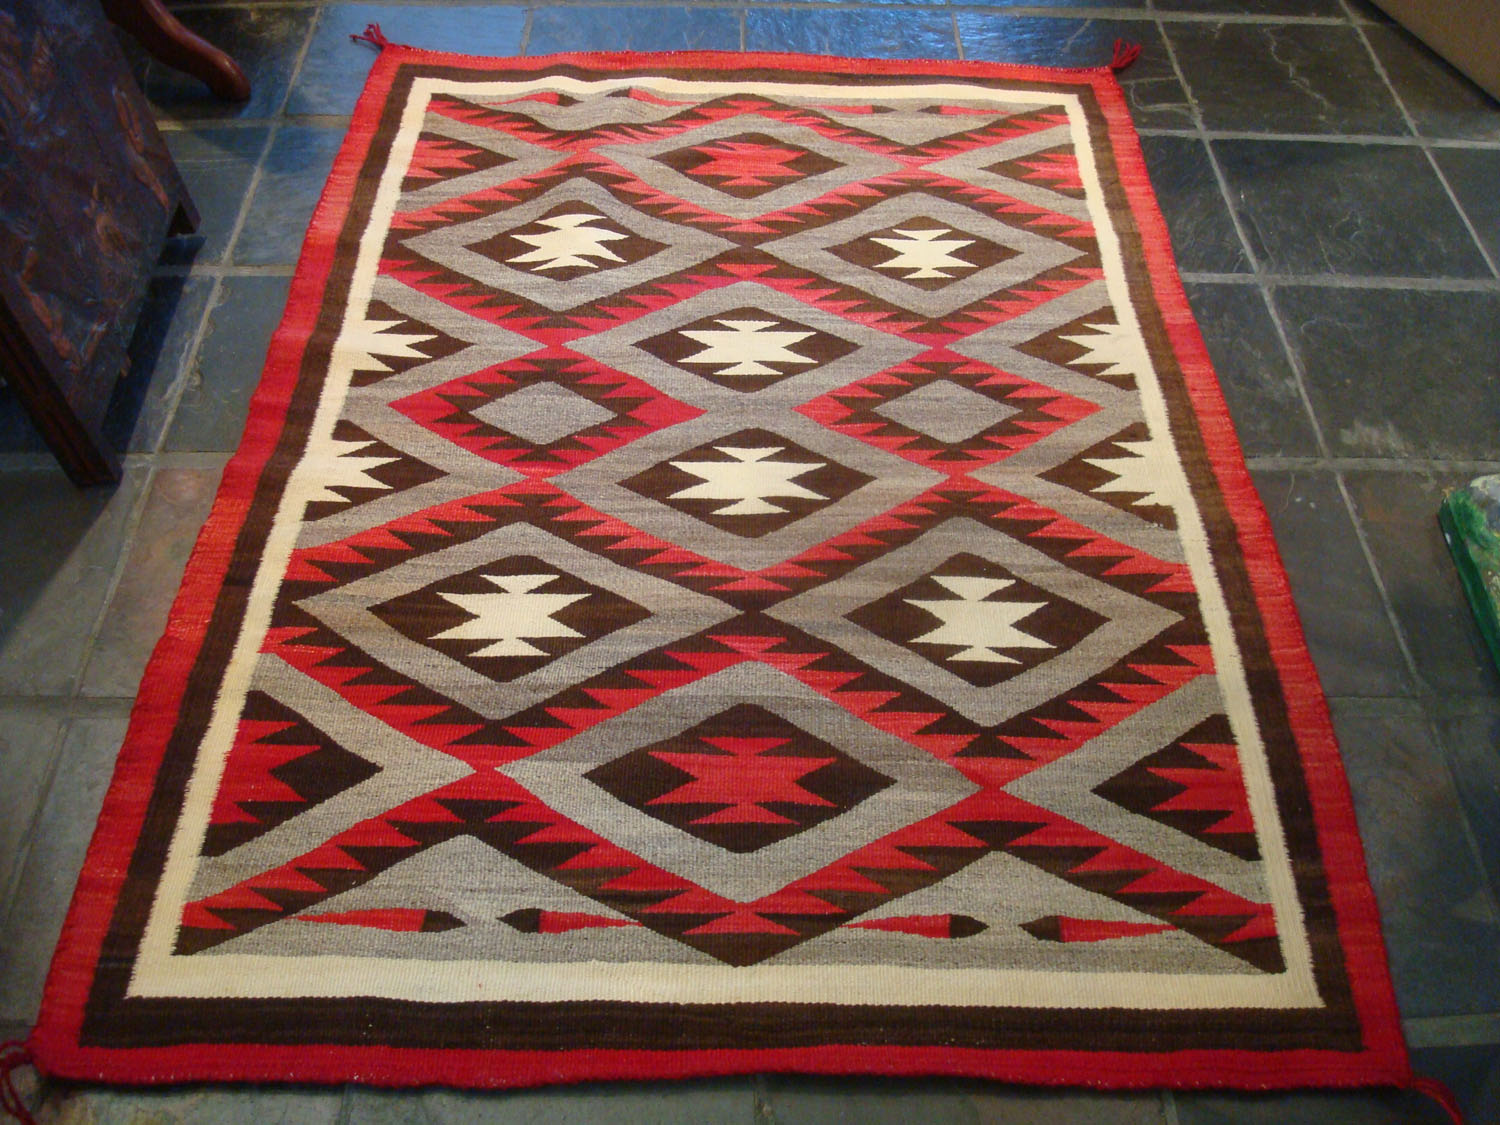 Carrelage design tapis am rindien moderne design pour for Carrelage design